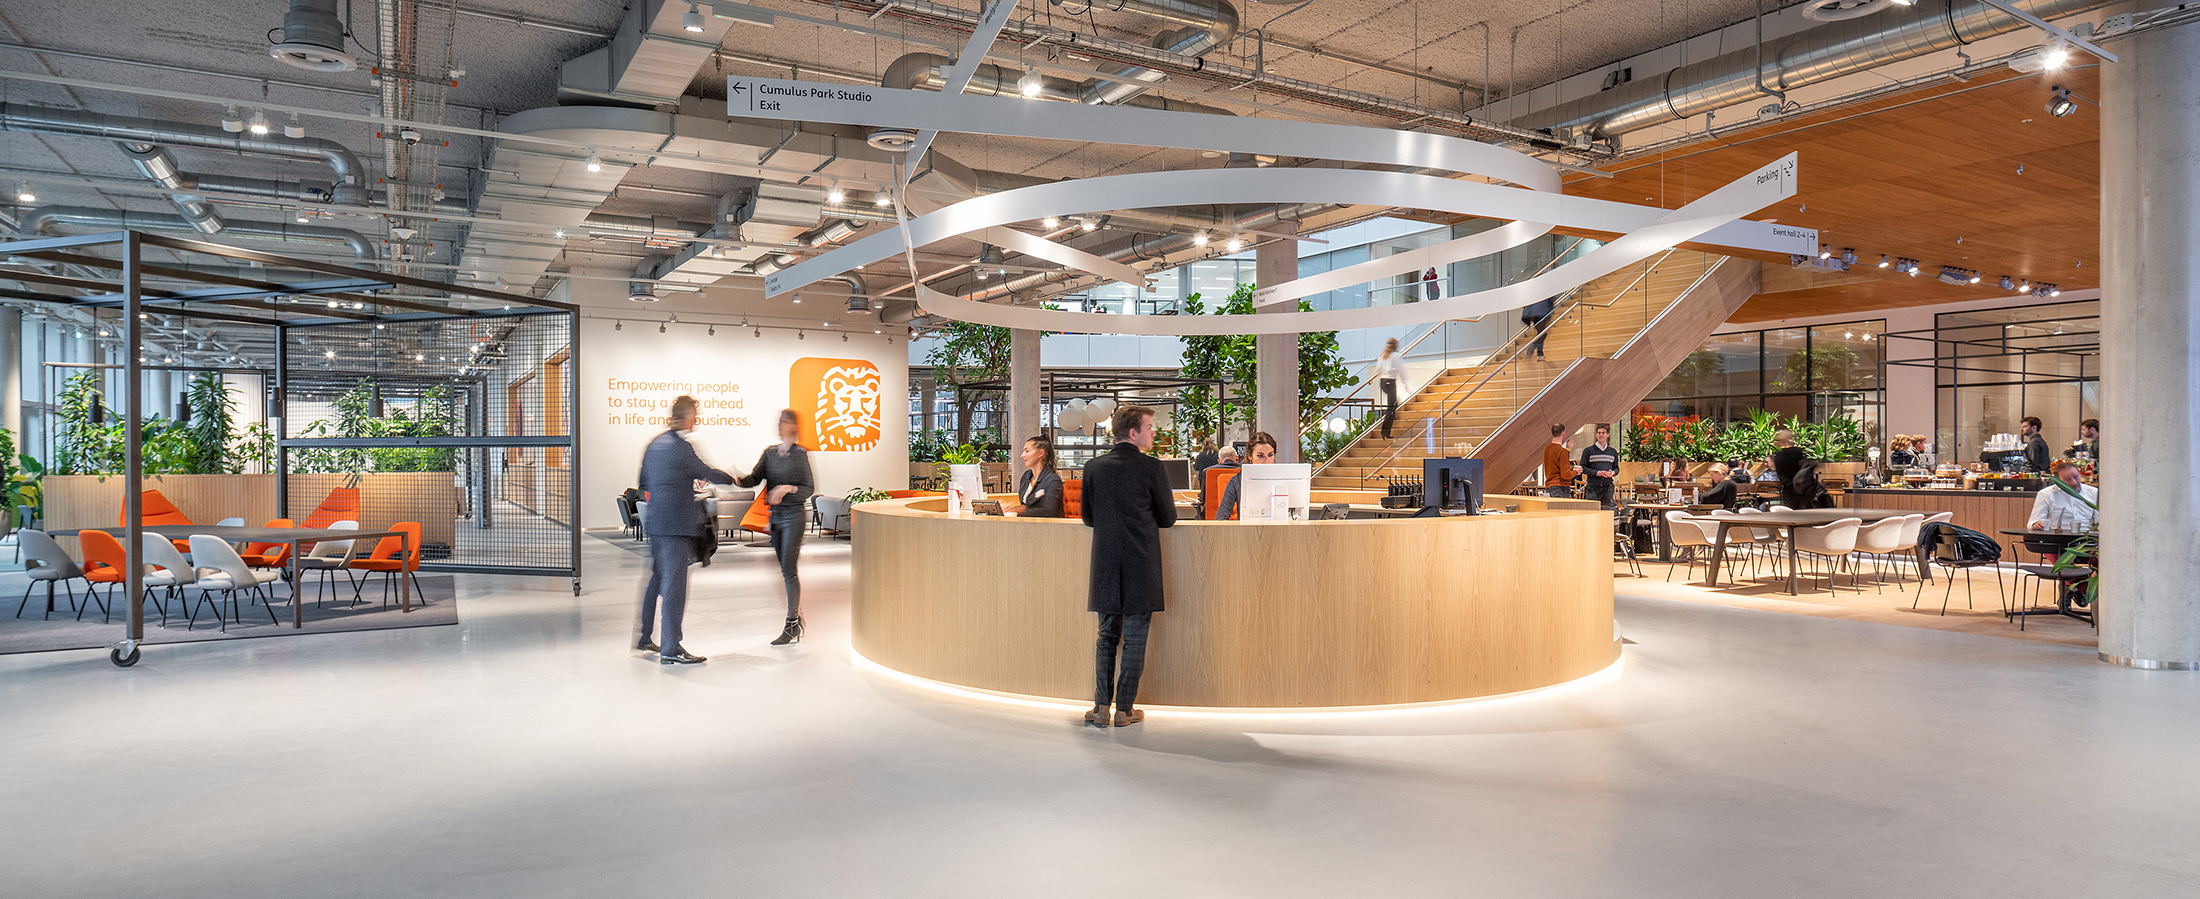 ING – The Netherlands, Amsterdam by xyz